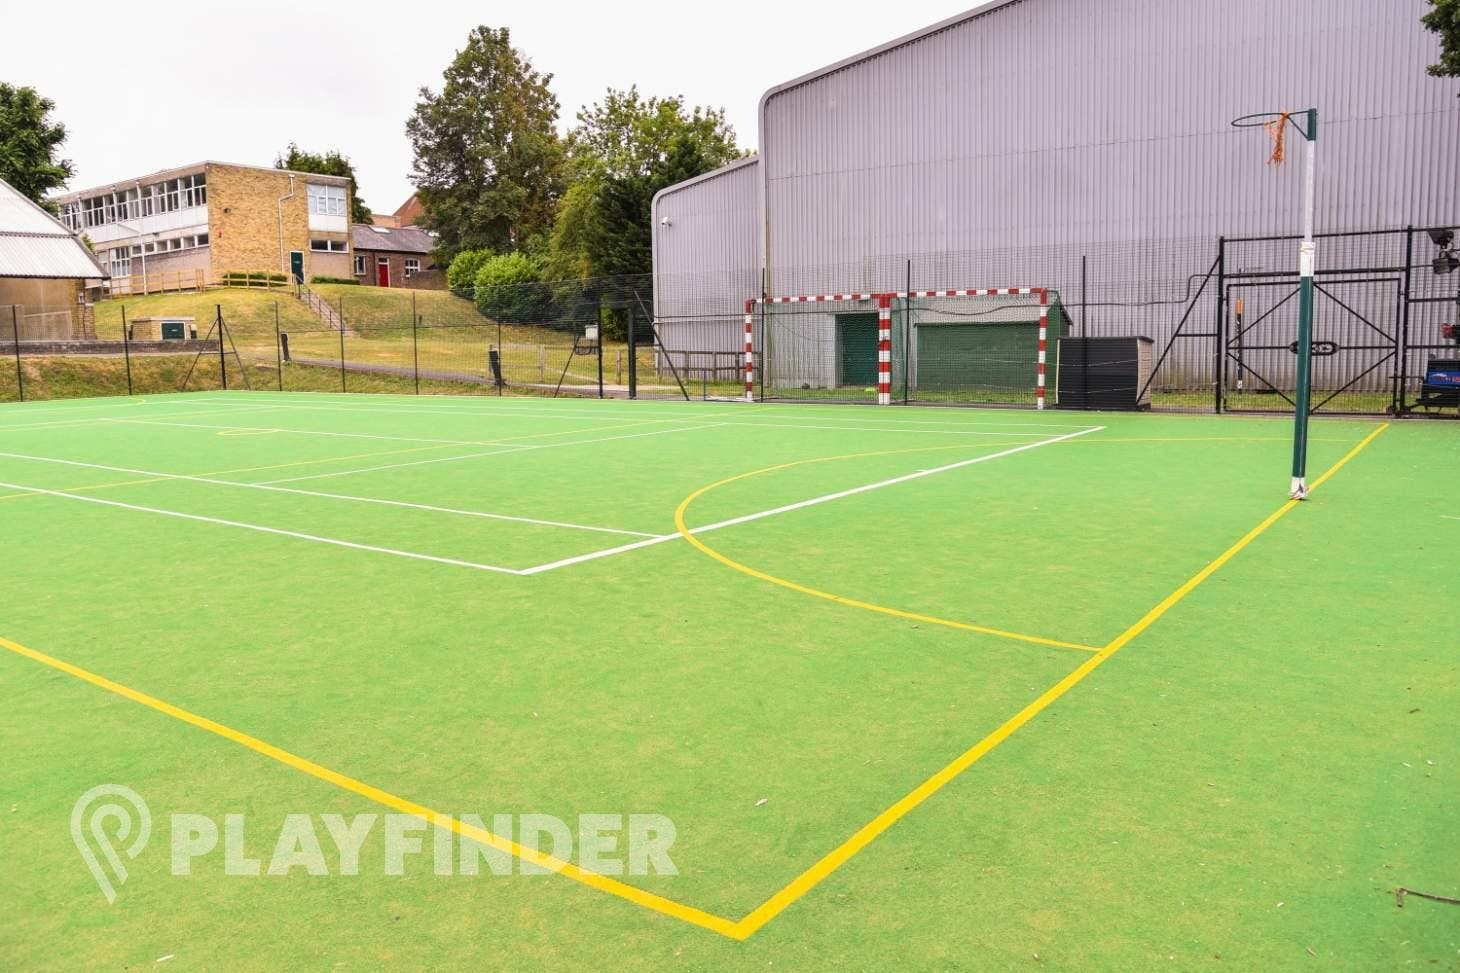 Aldenham School Sports Centre Outdoor | Astroturf netball court